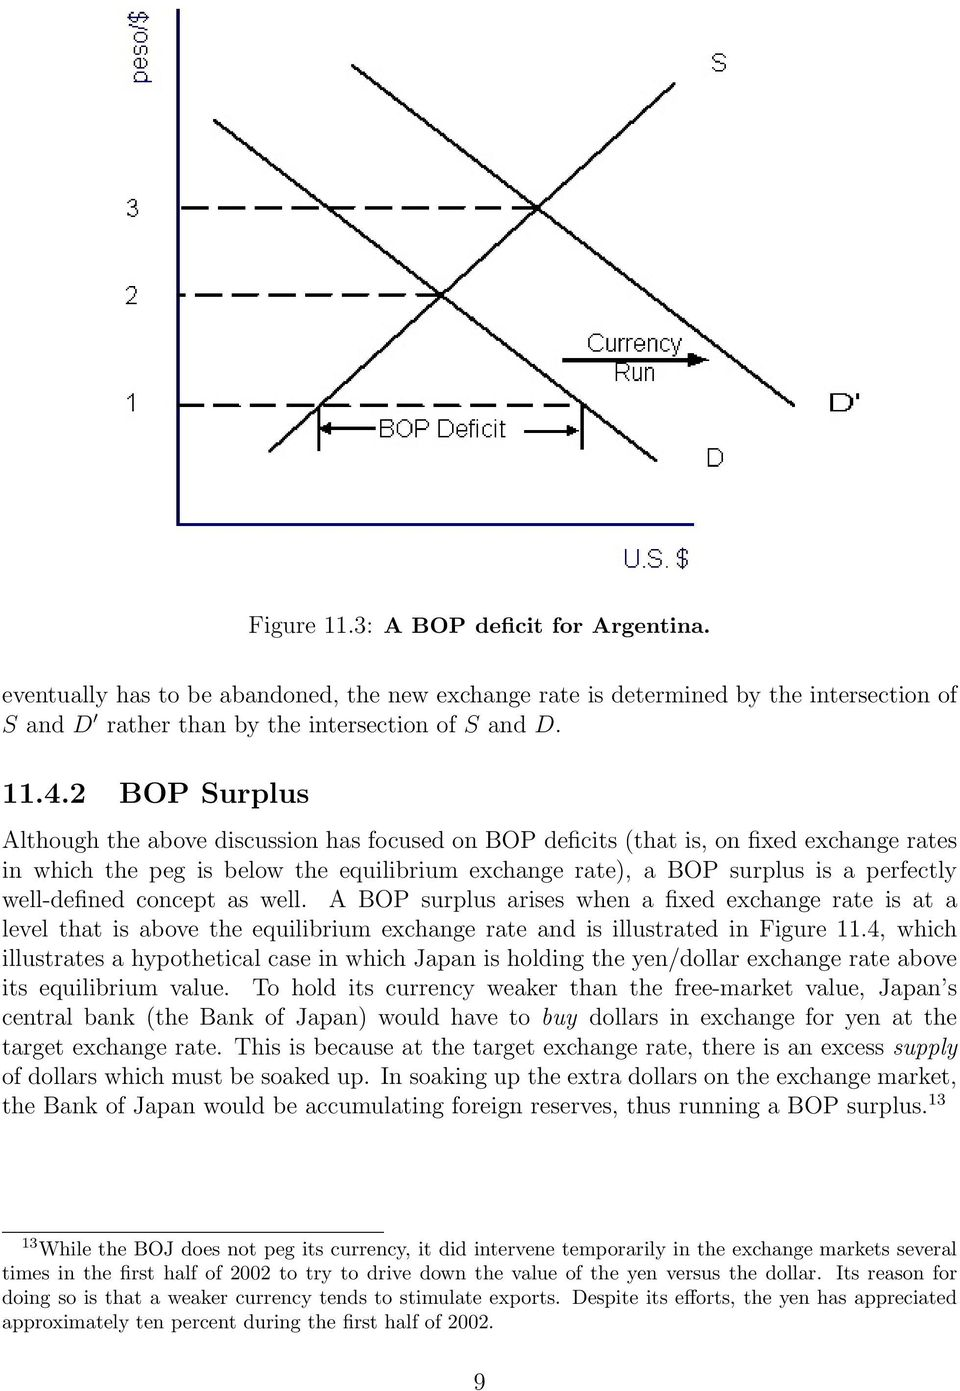 well-defined concept as well. A BOP surplus arises when a fixed exchange rate is at a level that is above the equilibrium exchange rate and is illustrated in Figure 11.